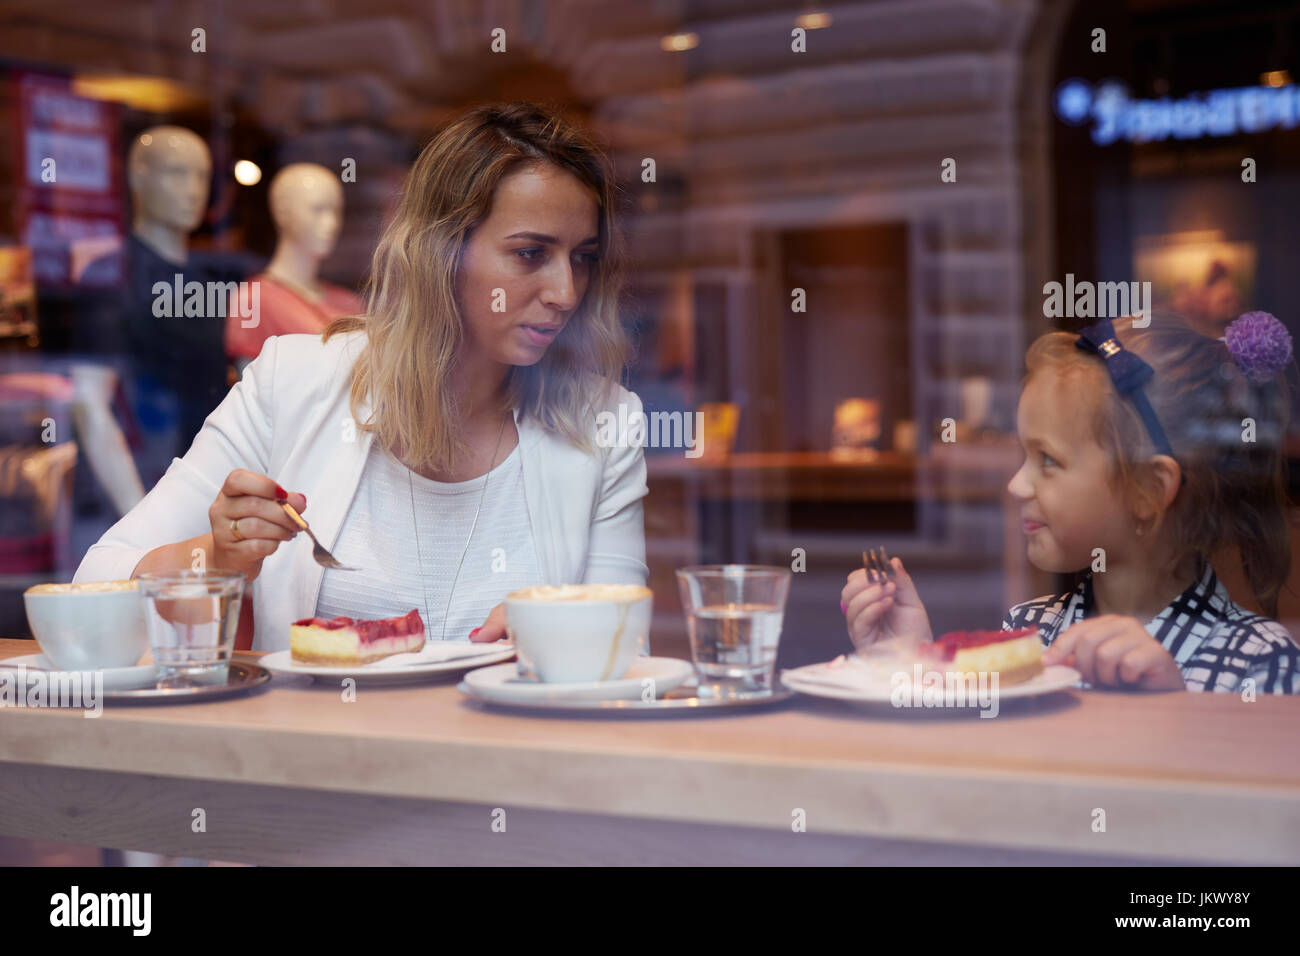 Young mother and daughter spending time in cafe and eating cake - Stock Image